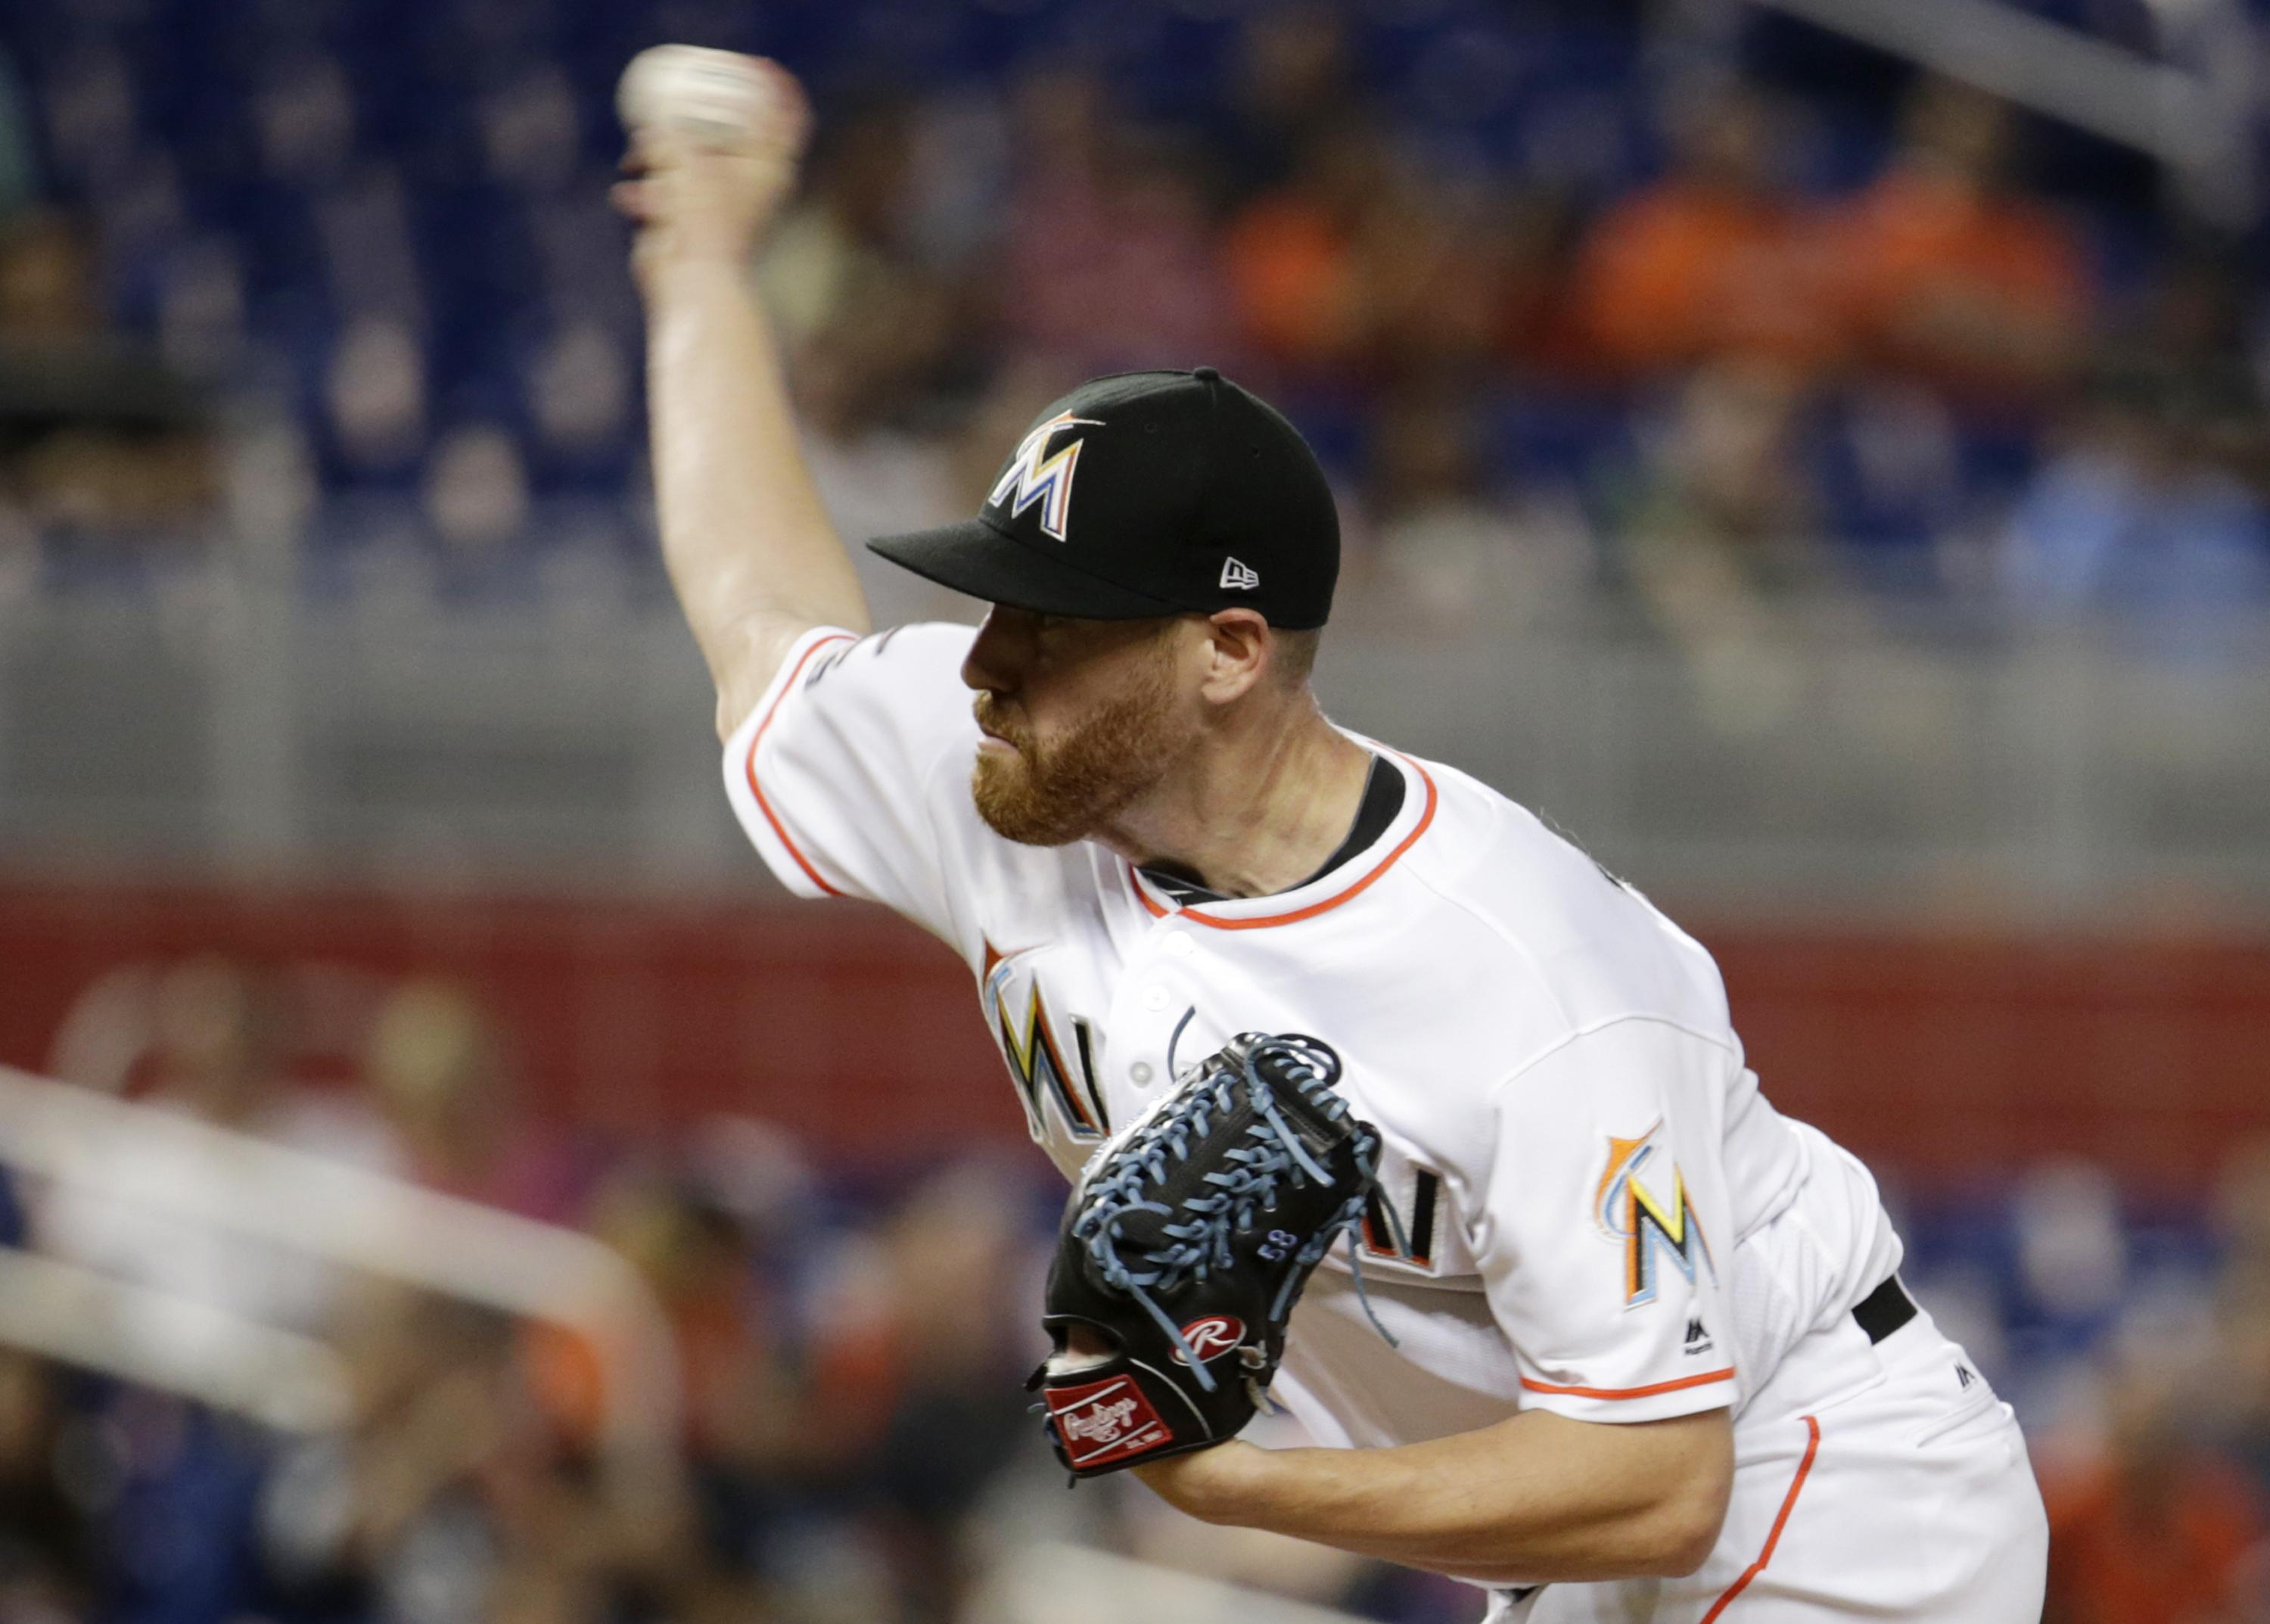 Angels_marlins_baseball_29184